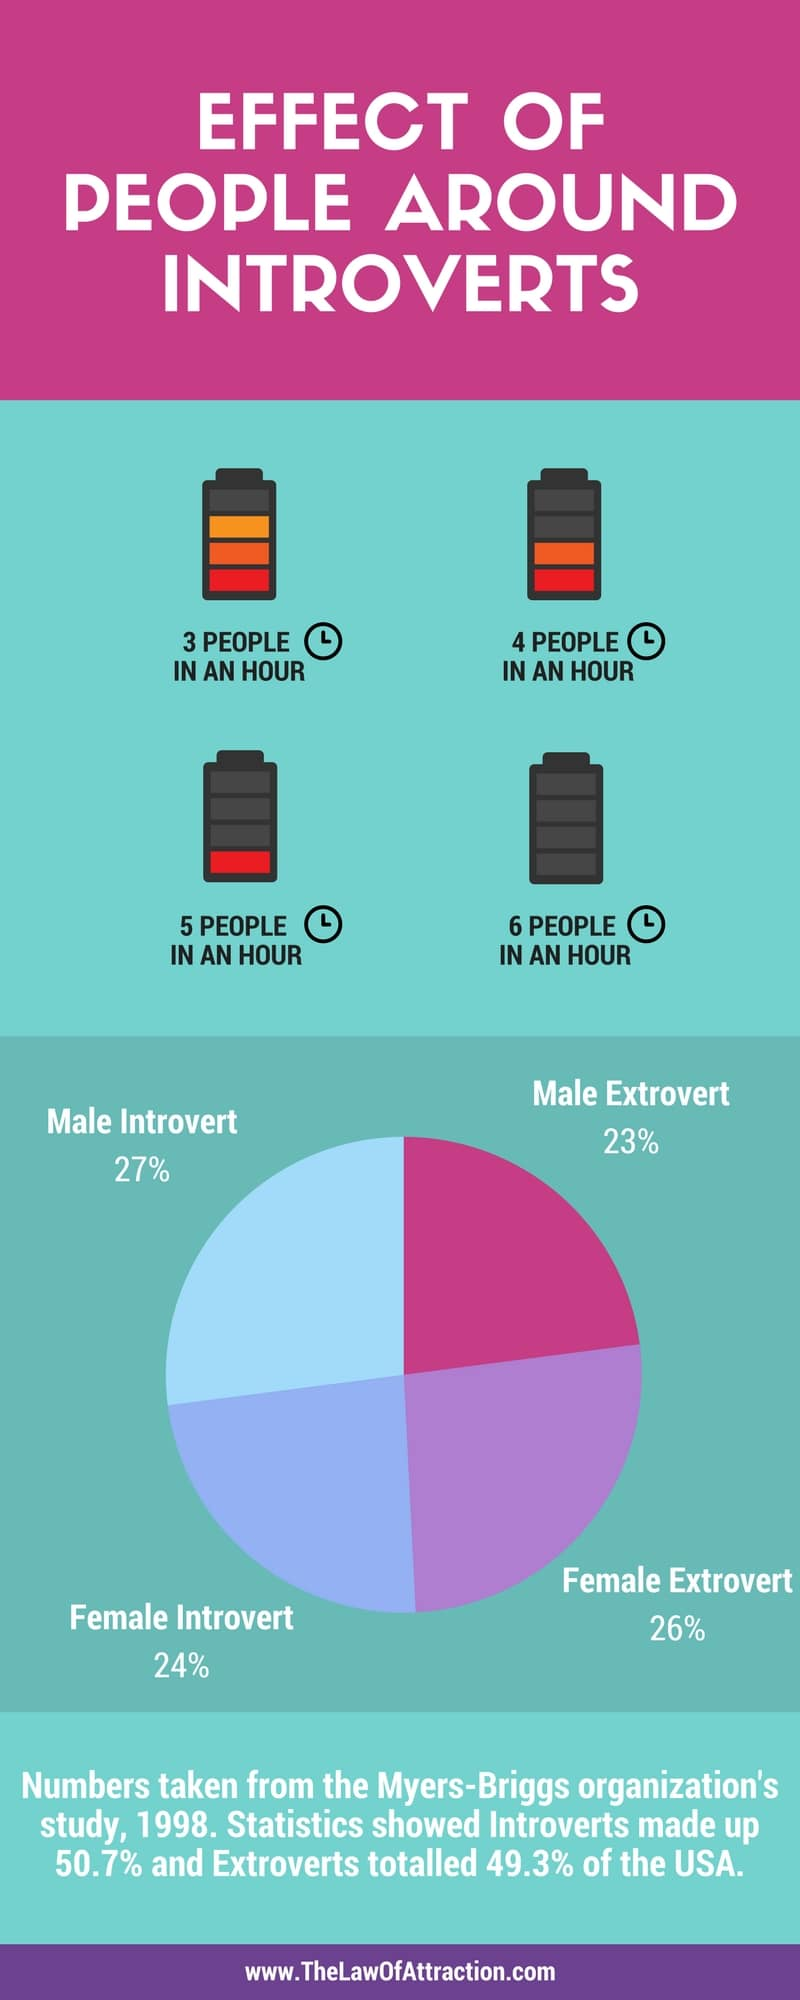 EFFECT OF PEOPLE AROUND INTROVERTS